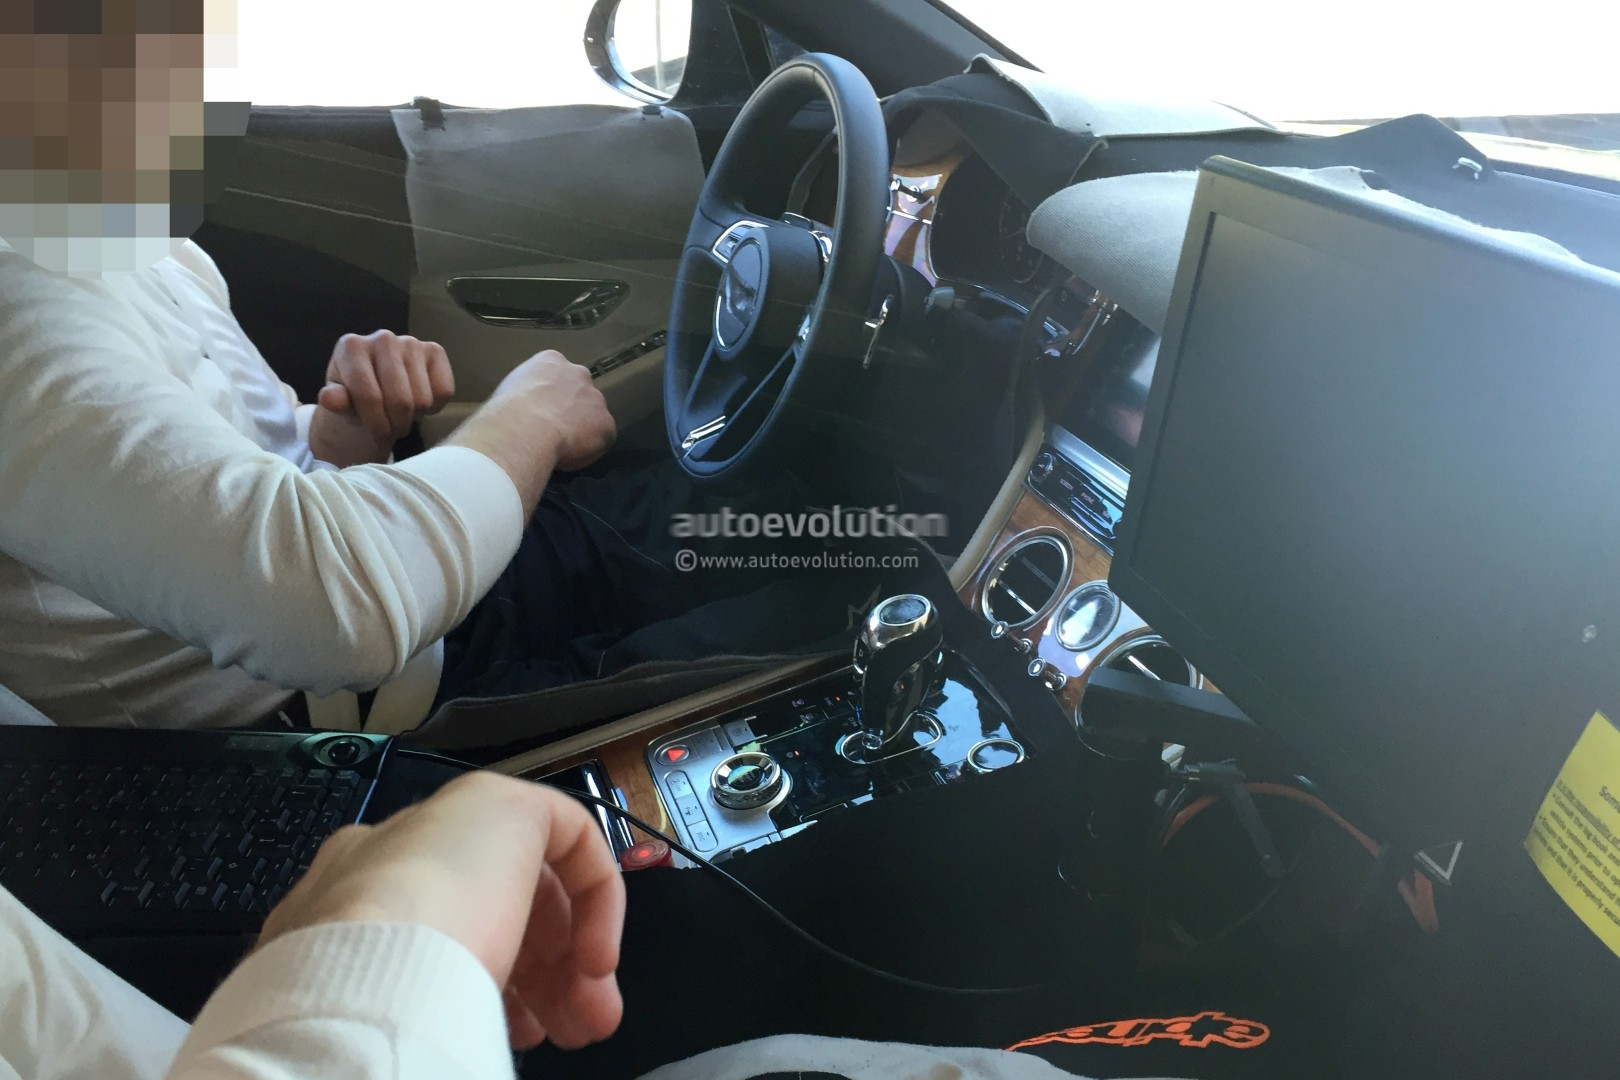 Bentley Bentayga Interior >> 2018 Bentley Continental GT Shows New Features in First Interior Spyshots - autoevolution